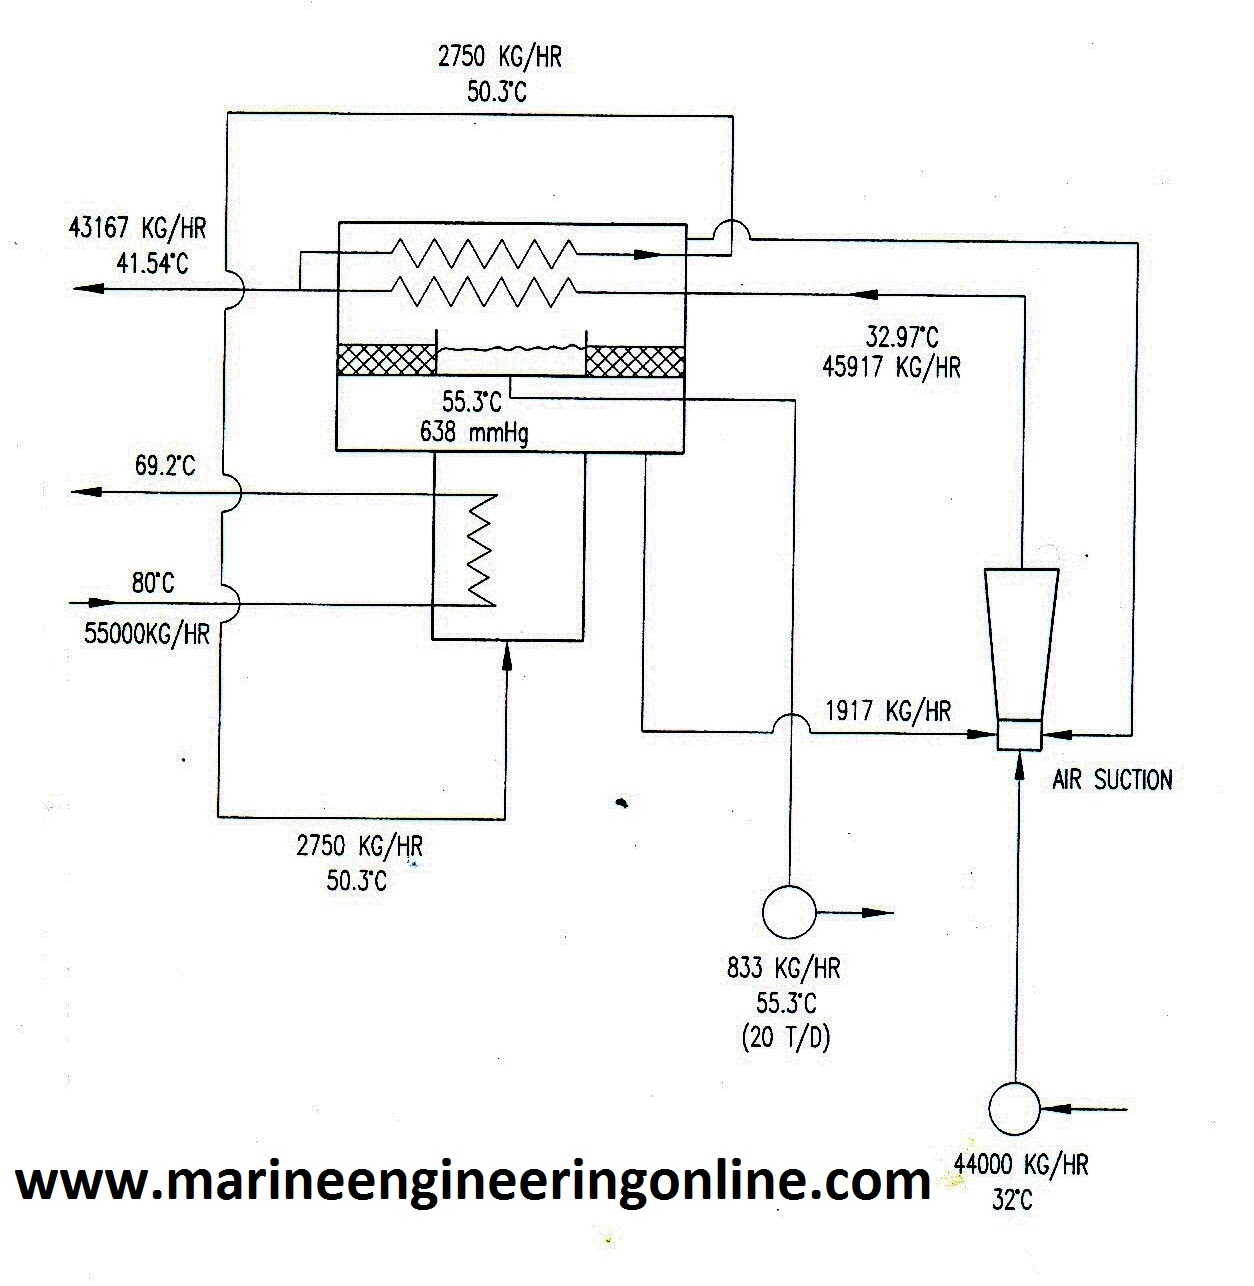 how to produce freshwater on ships archives marine engineering rh marineengineeringonline com